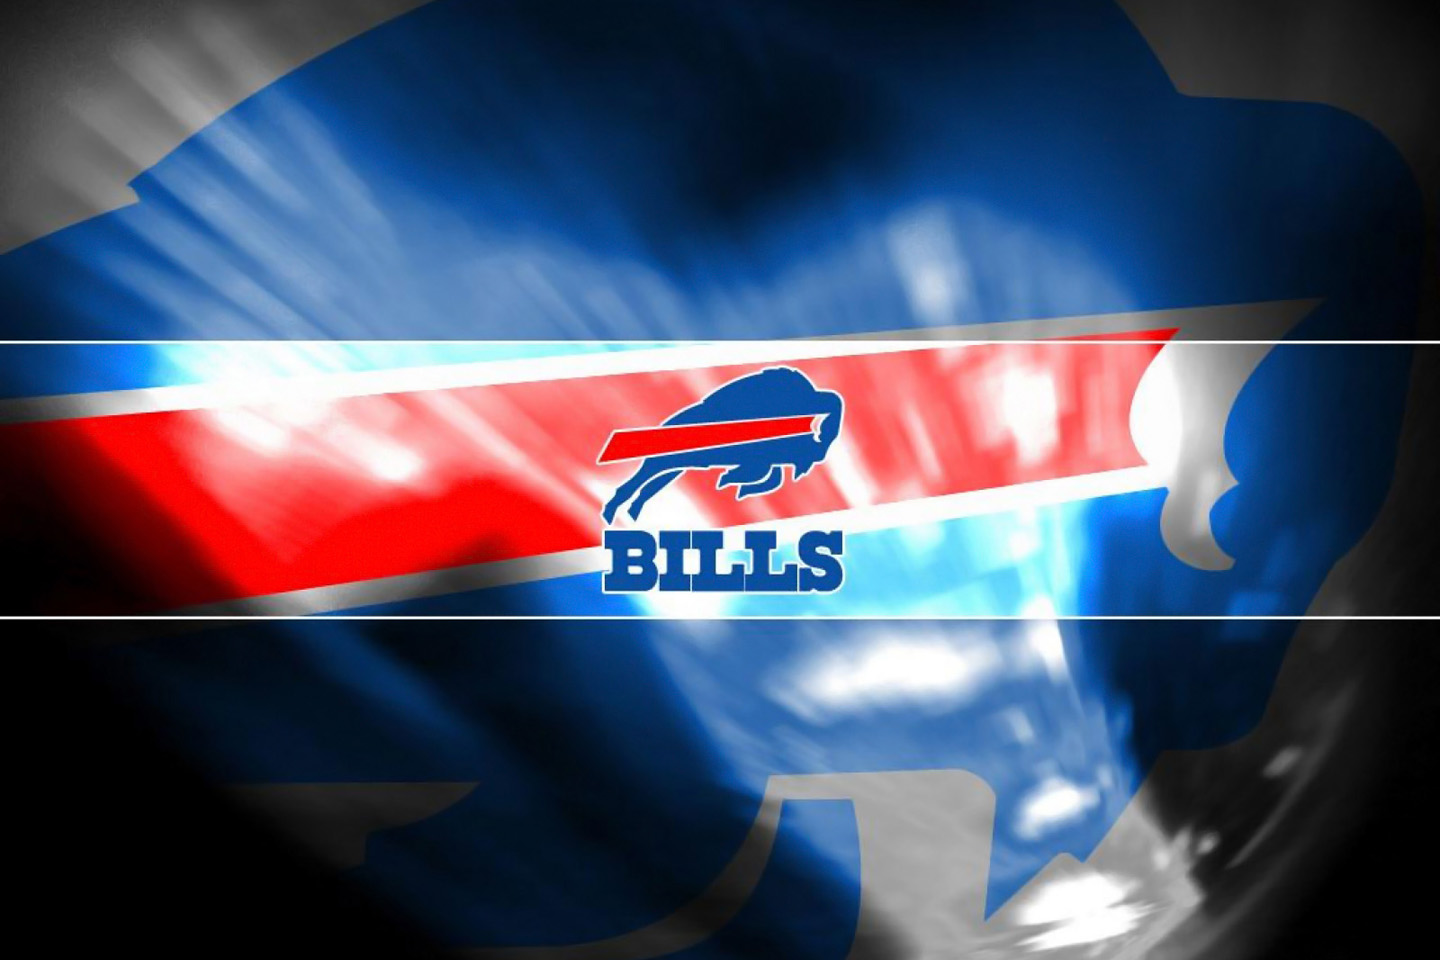 Nice Buffalo Bills wallpaper